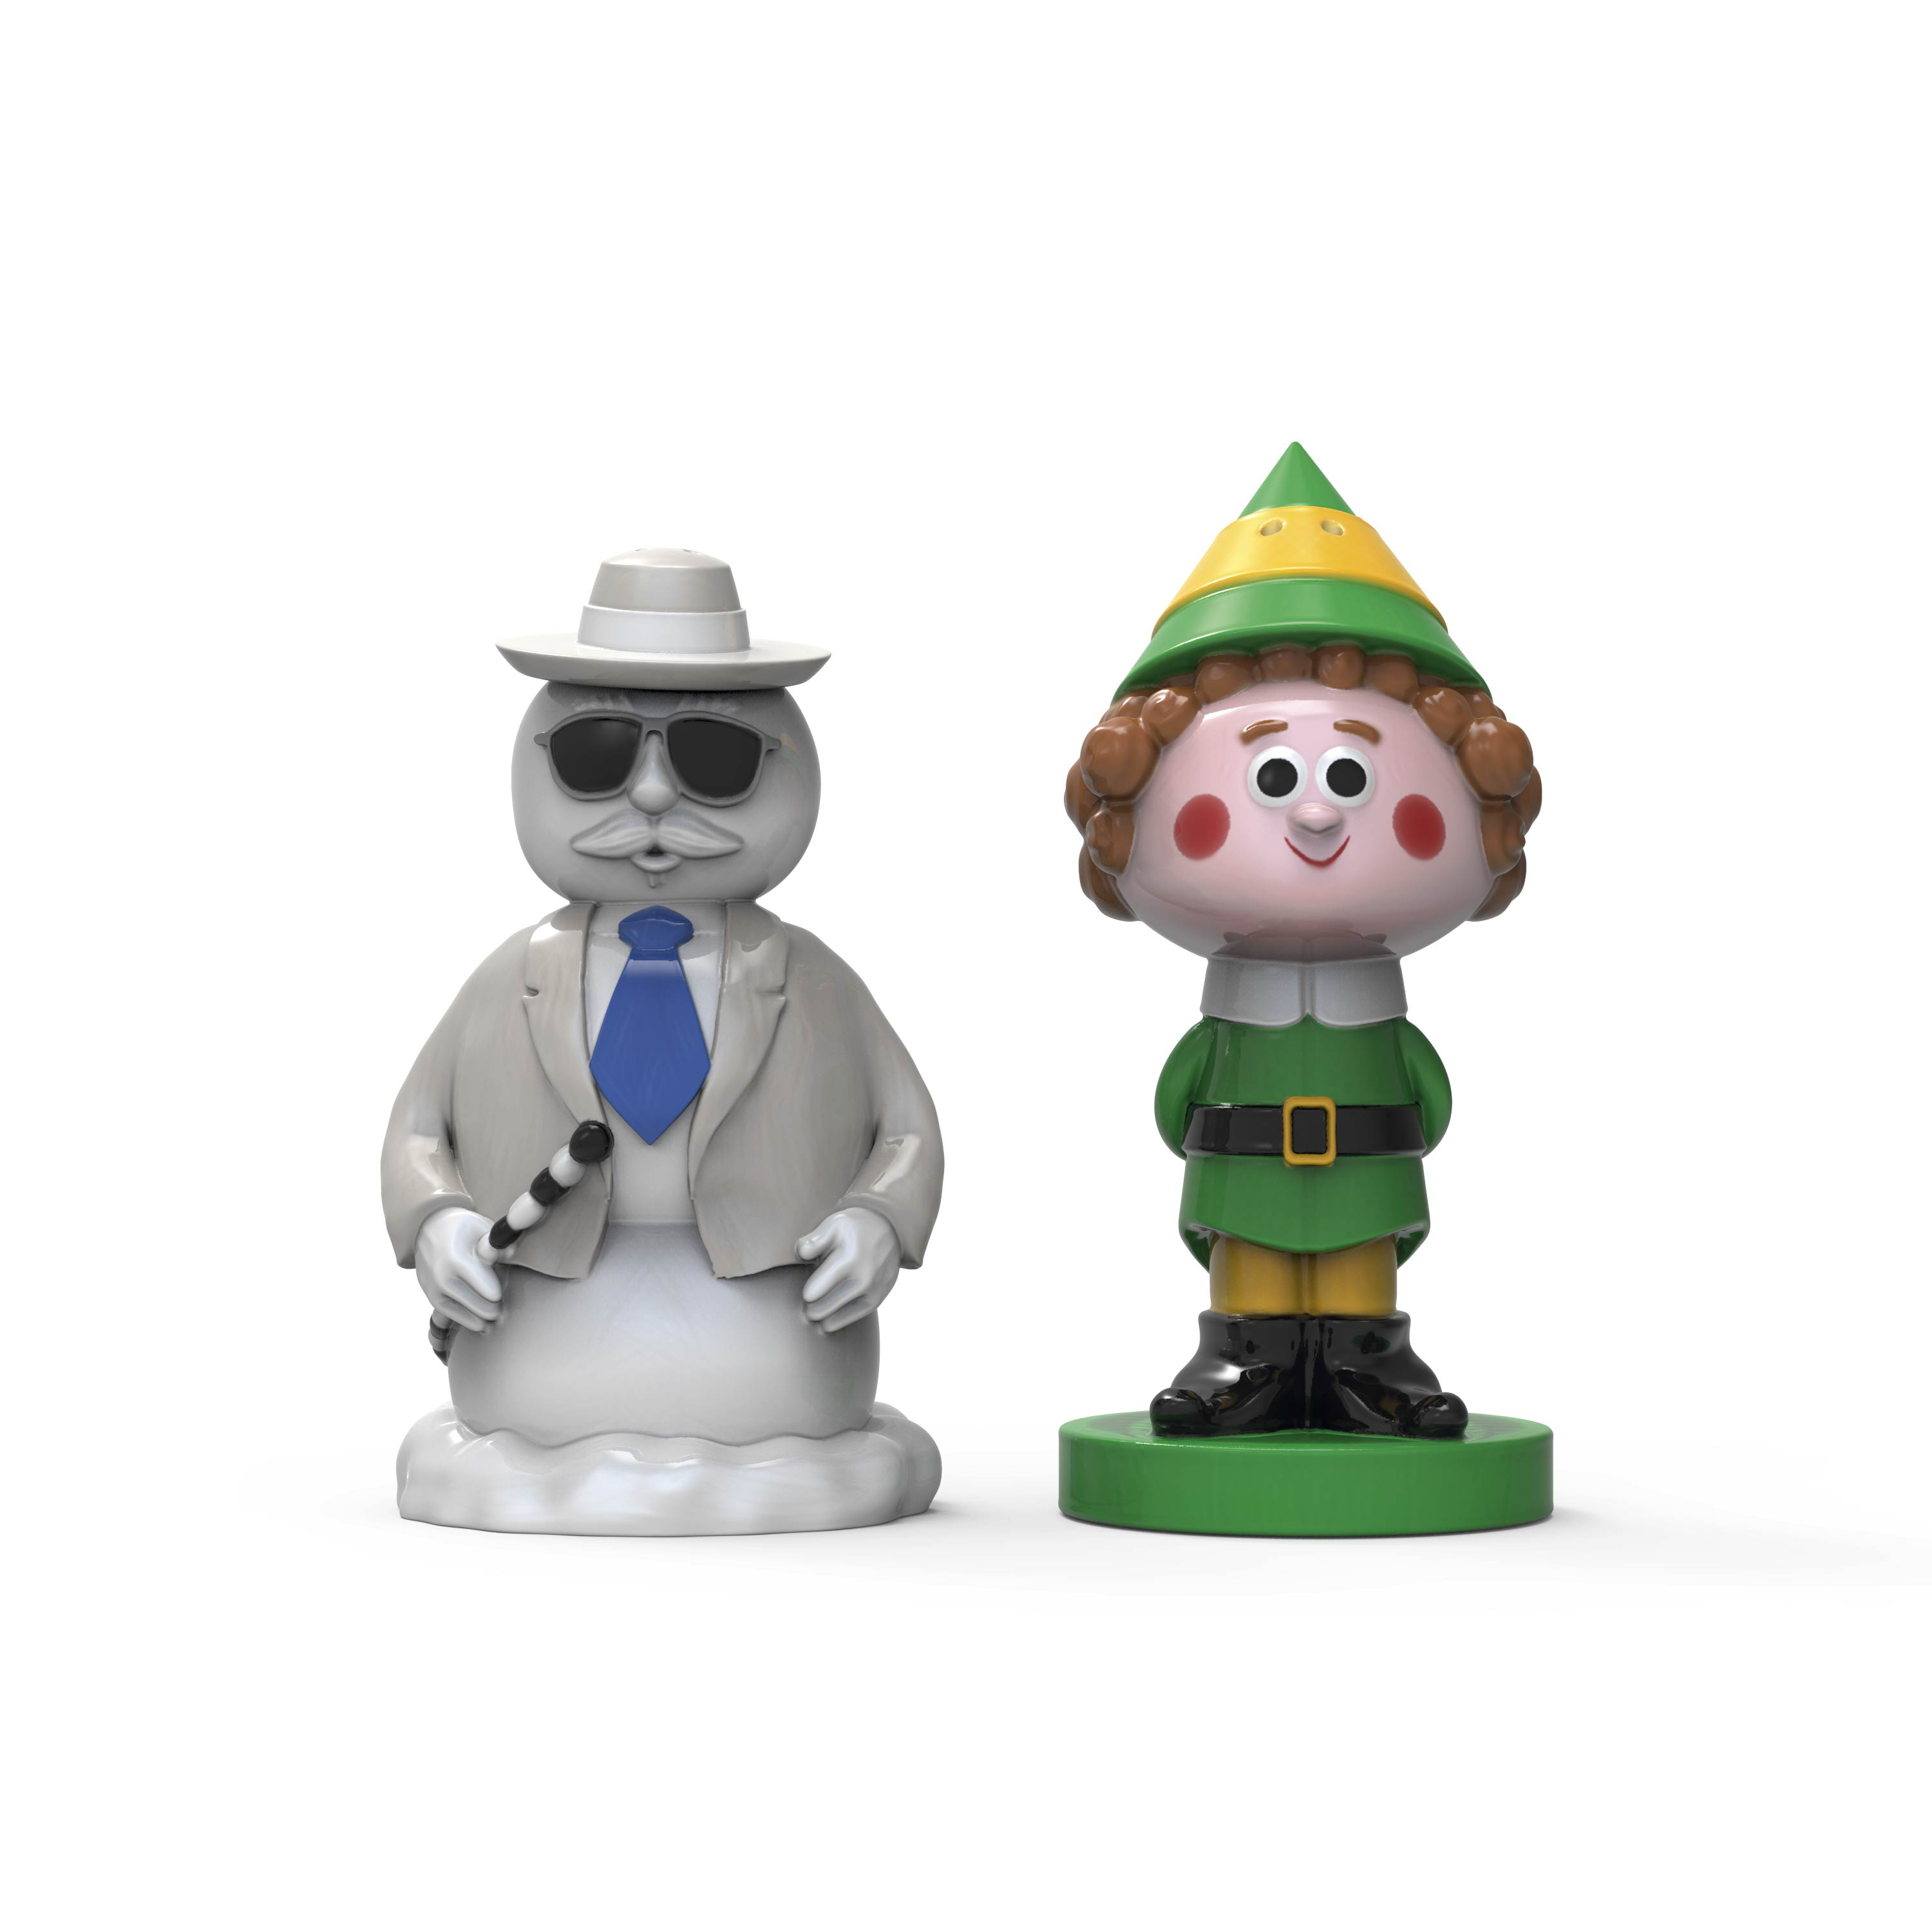 Christmas Collectibles Salt and Pepper Shaker Set, Elf & Snowman, 2-piece set slideshow image 1